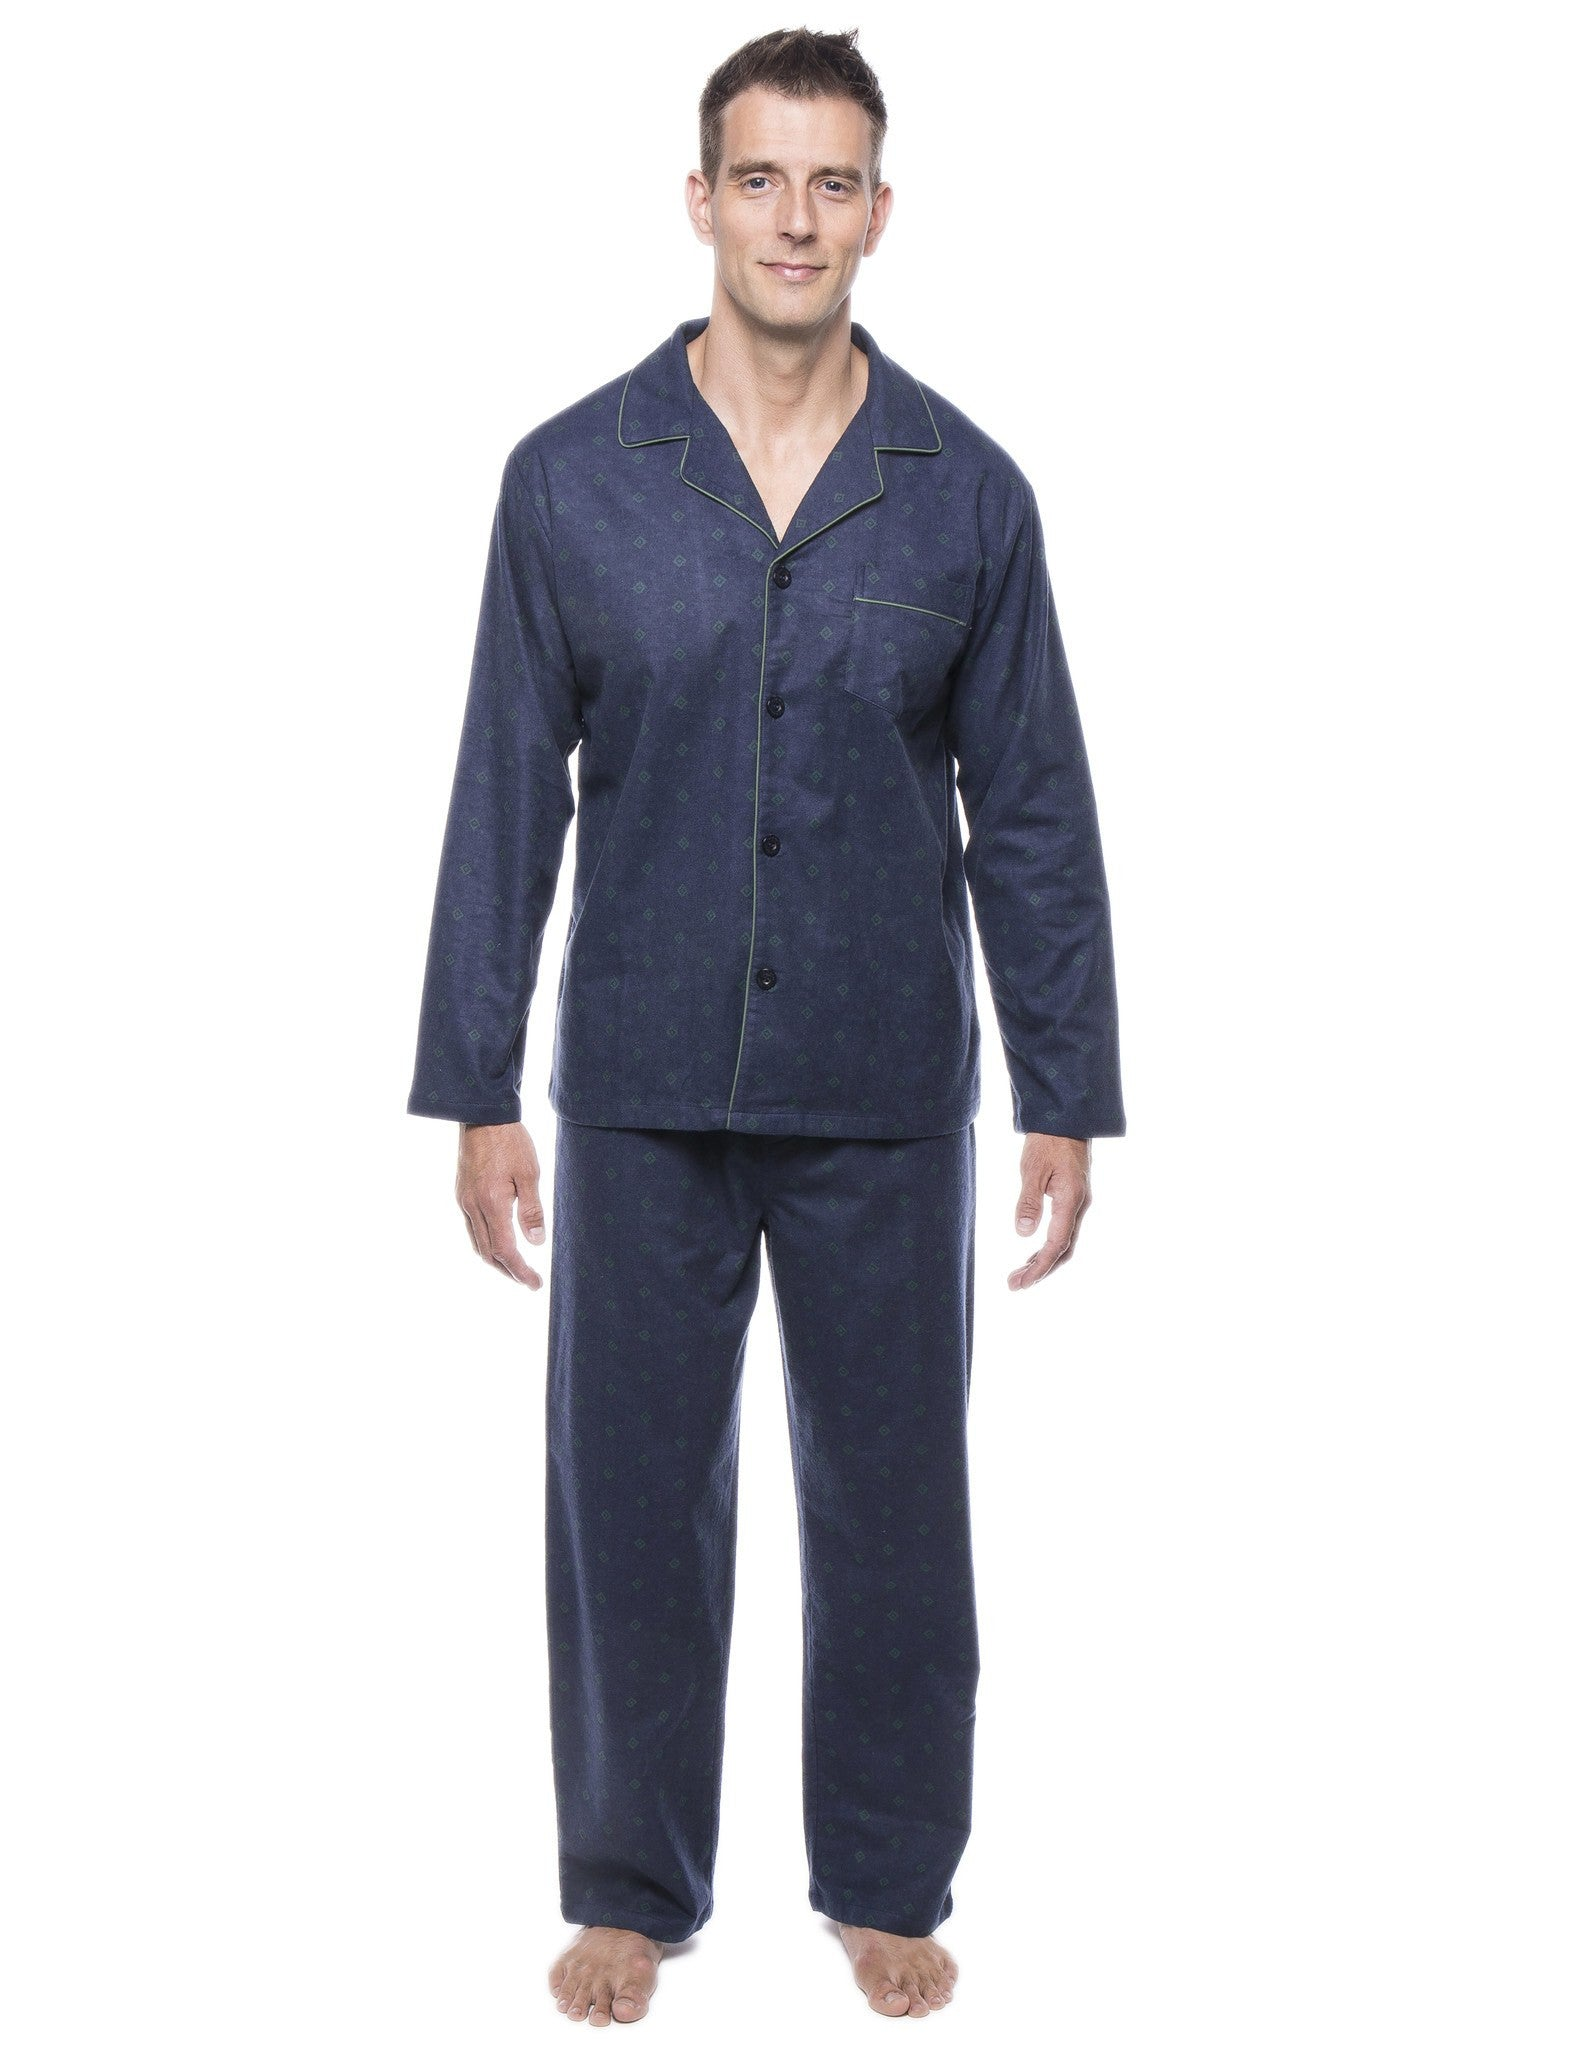 Men's 100% Cotton Flannel Pajama Set